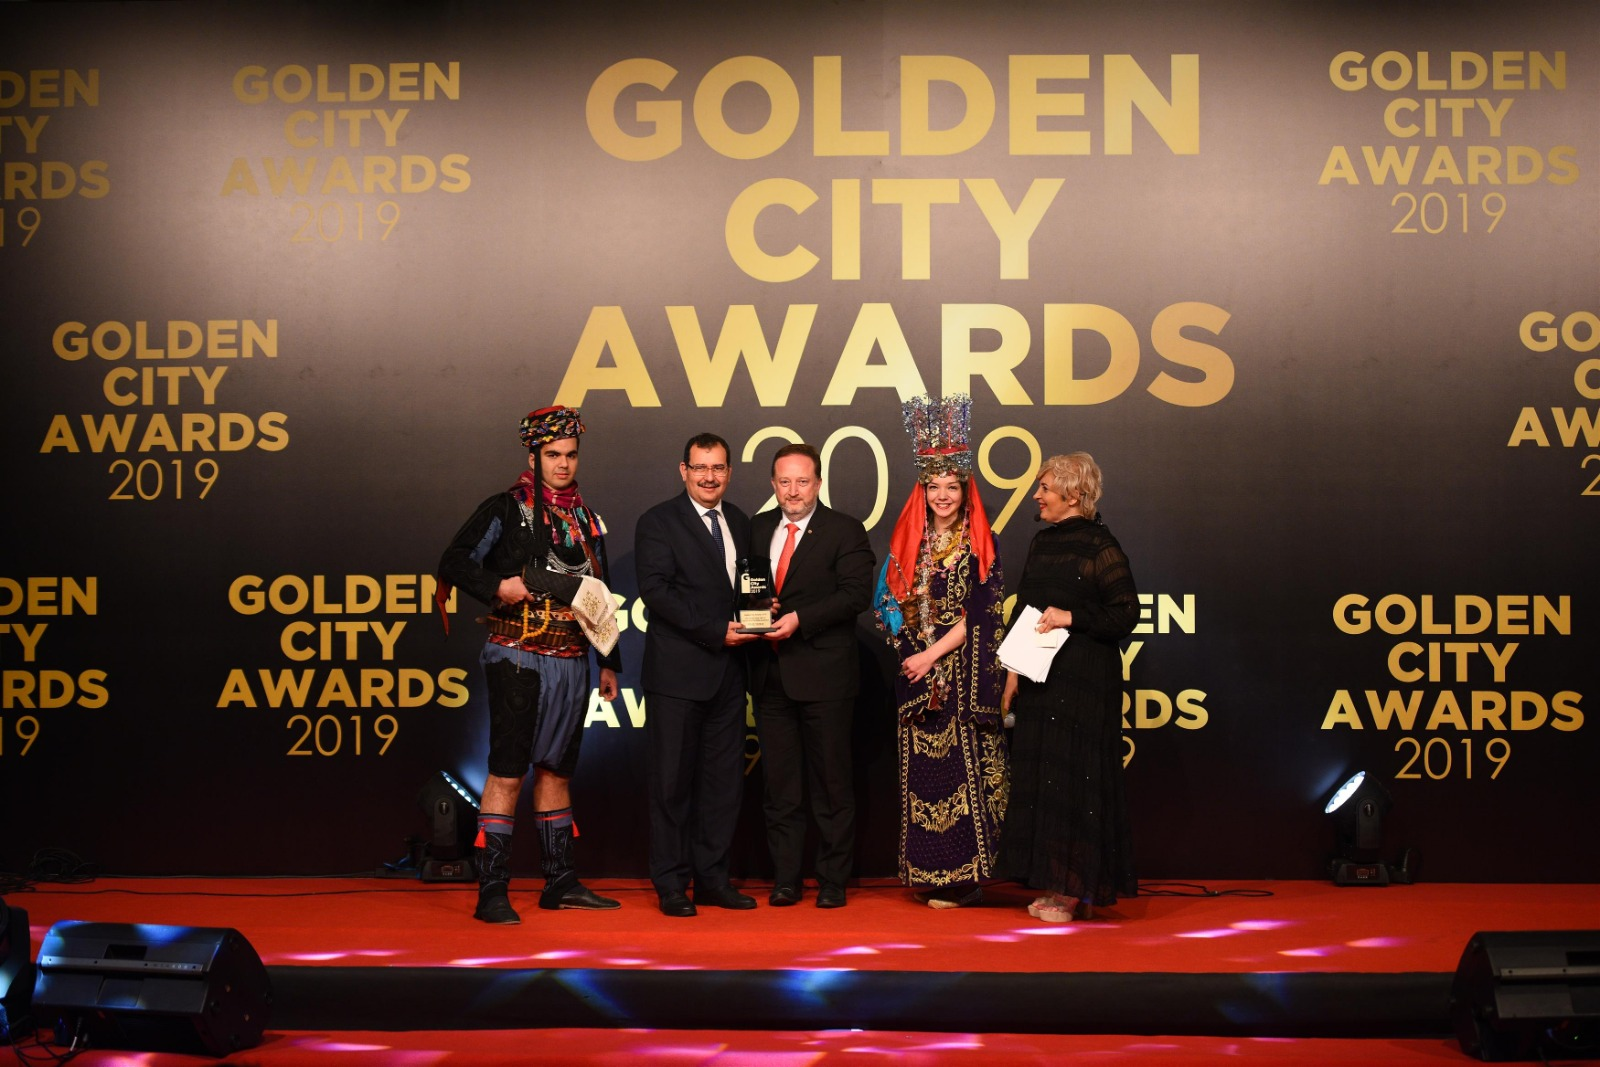 201912201123_golden-city-awards (1)-639cd5b1-d1d1-4eff-860c-ab22b8d3d4c8.jpg